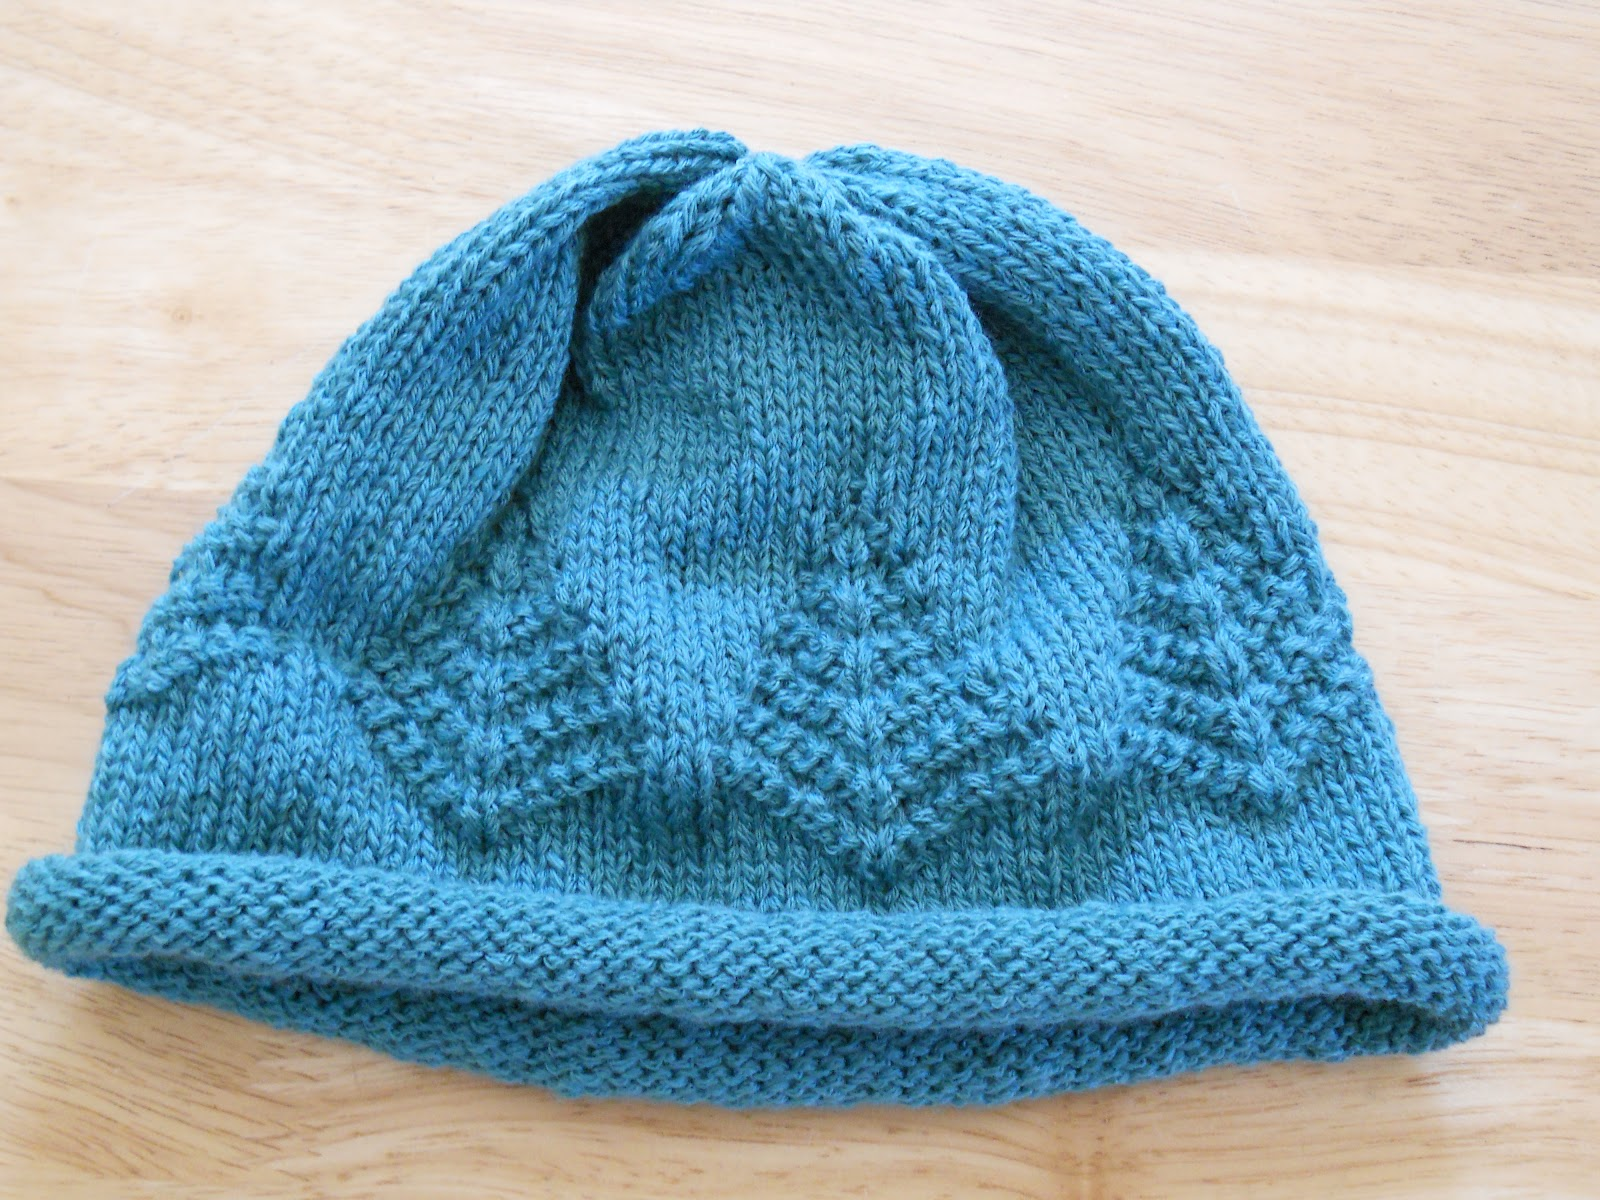 Knitting Patterns For Cancer Beanies : Knitting with Schnapps: Introducing The Giving Tree Chemo Cap!